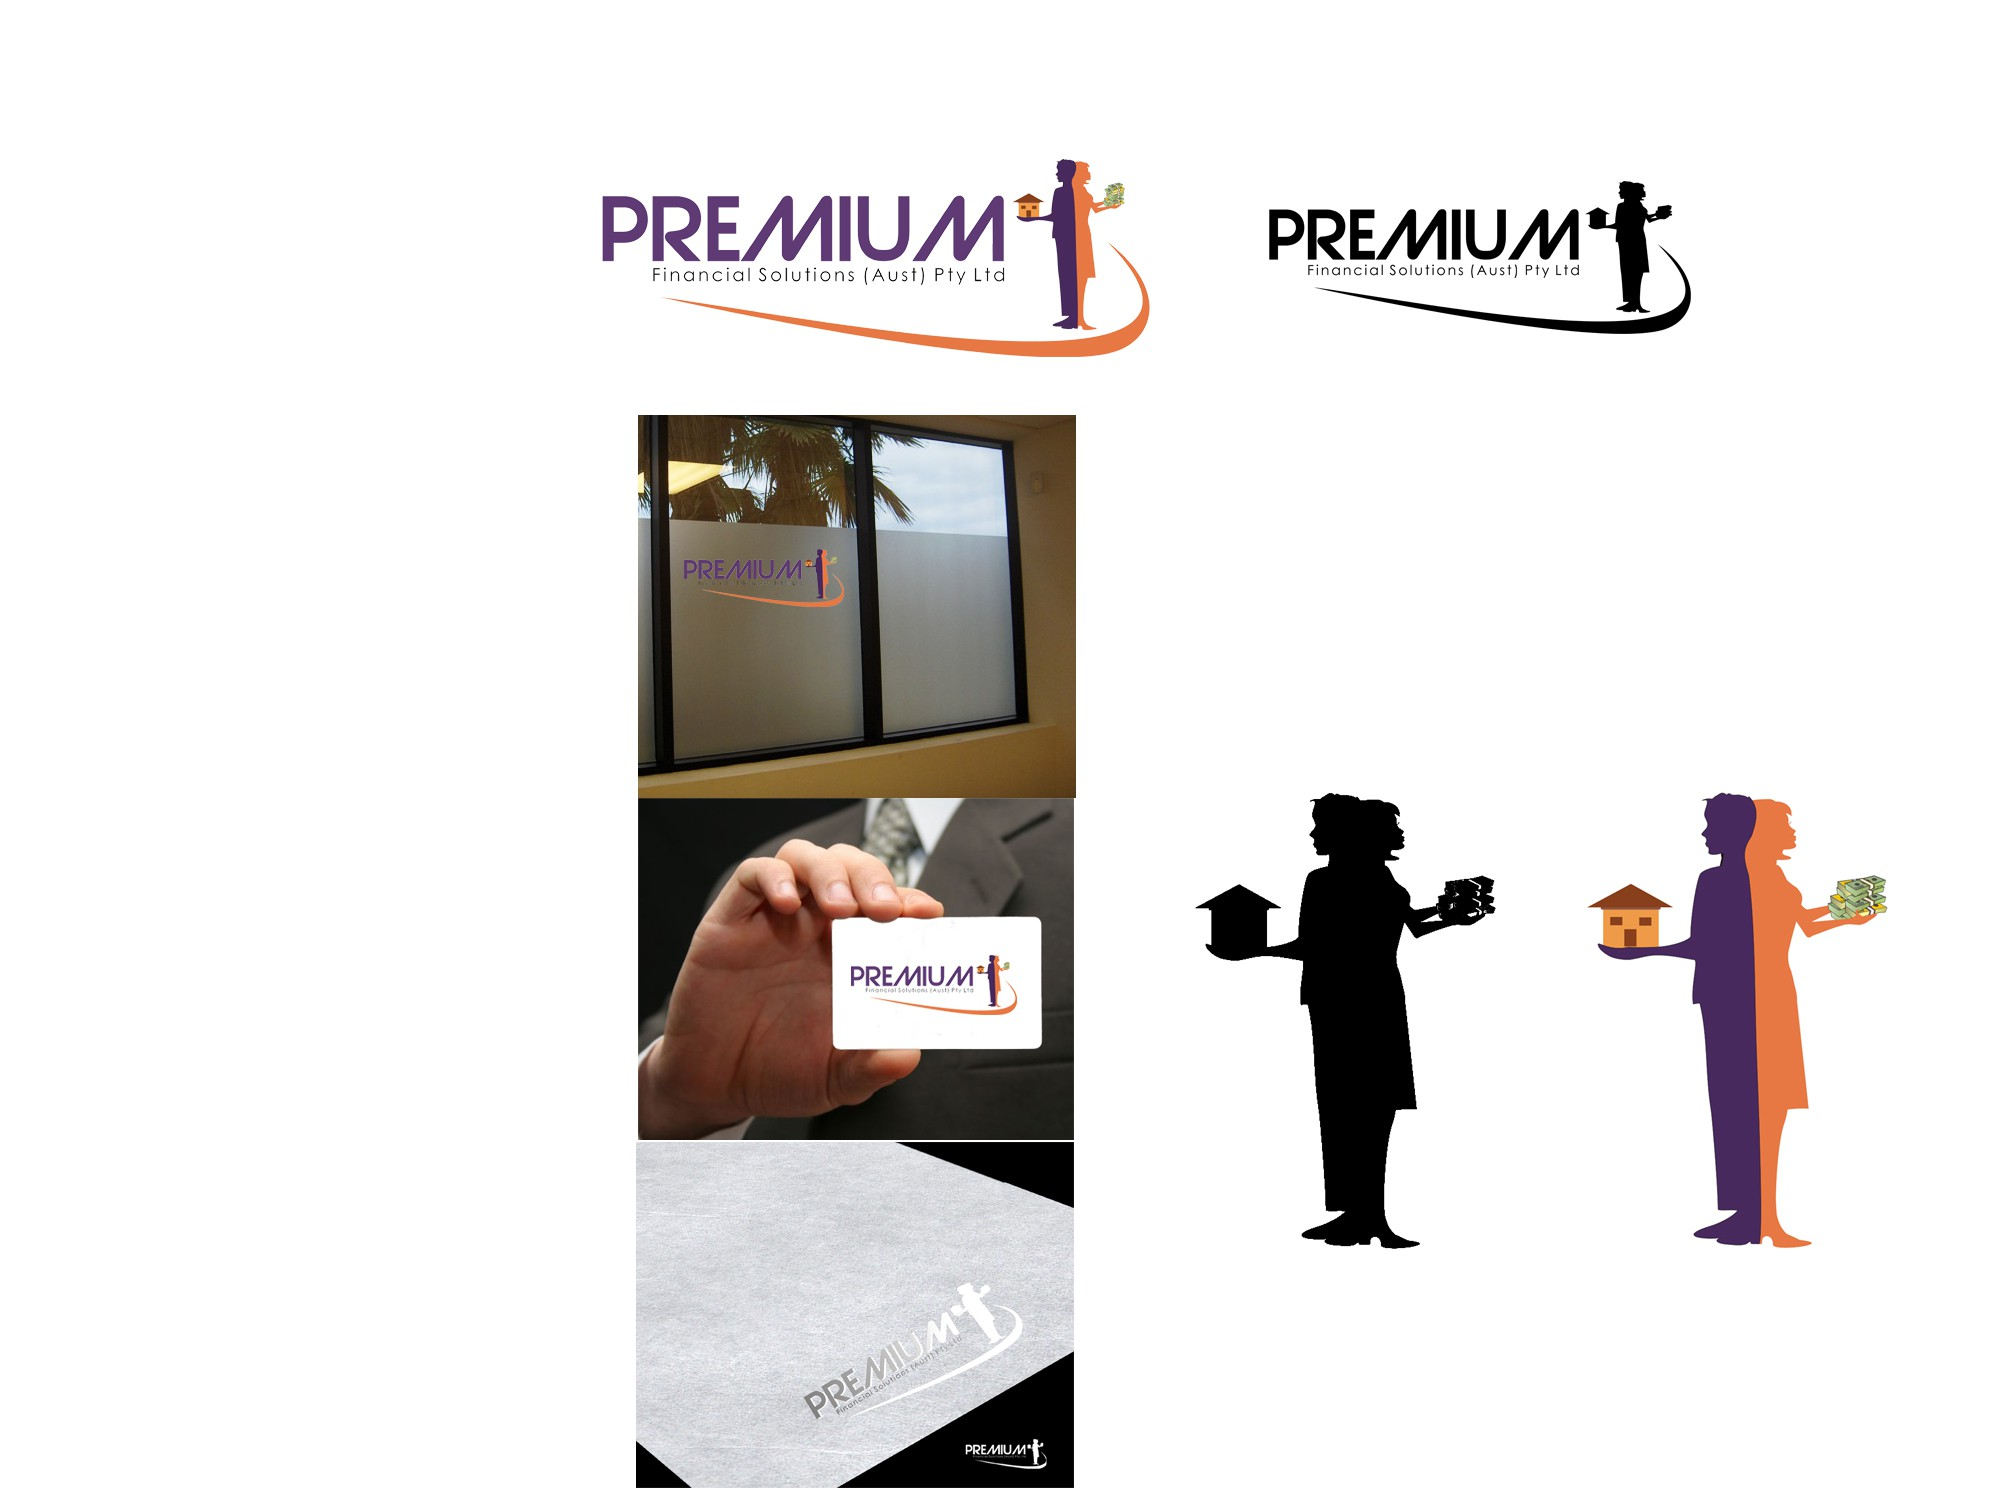 Help Premium Financial Solutions (Aust) Pty Ltd with a new logo